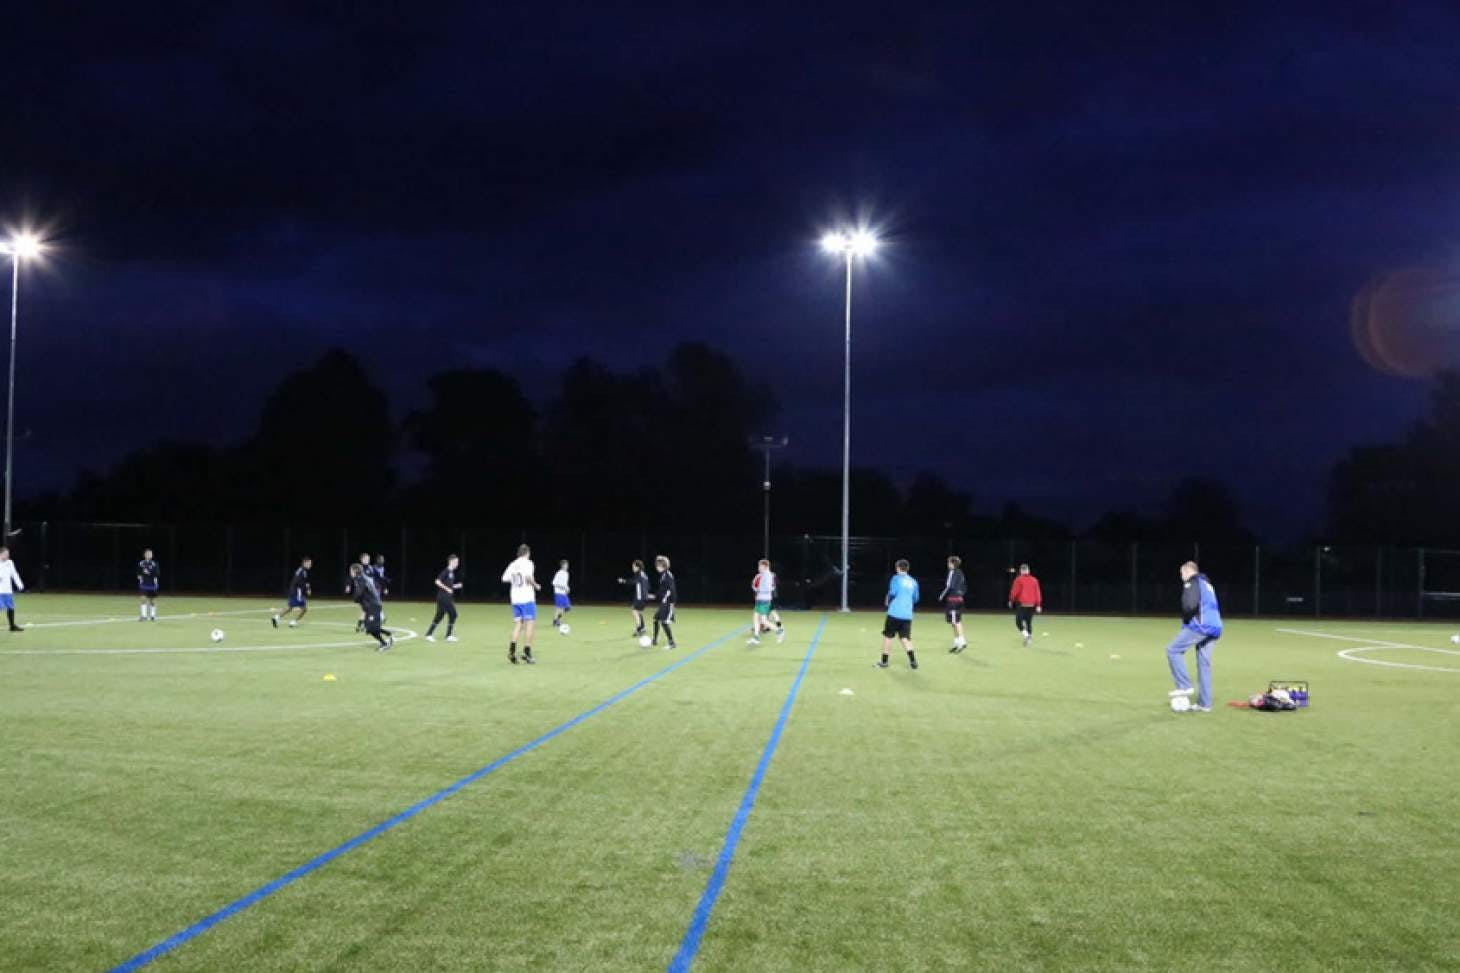 Portslade Sports Centre 5 a side | 3G Astroturf football pitch